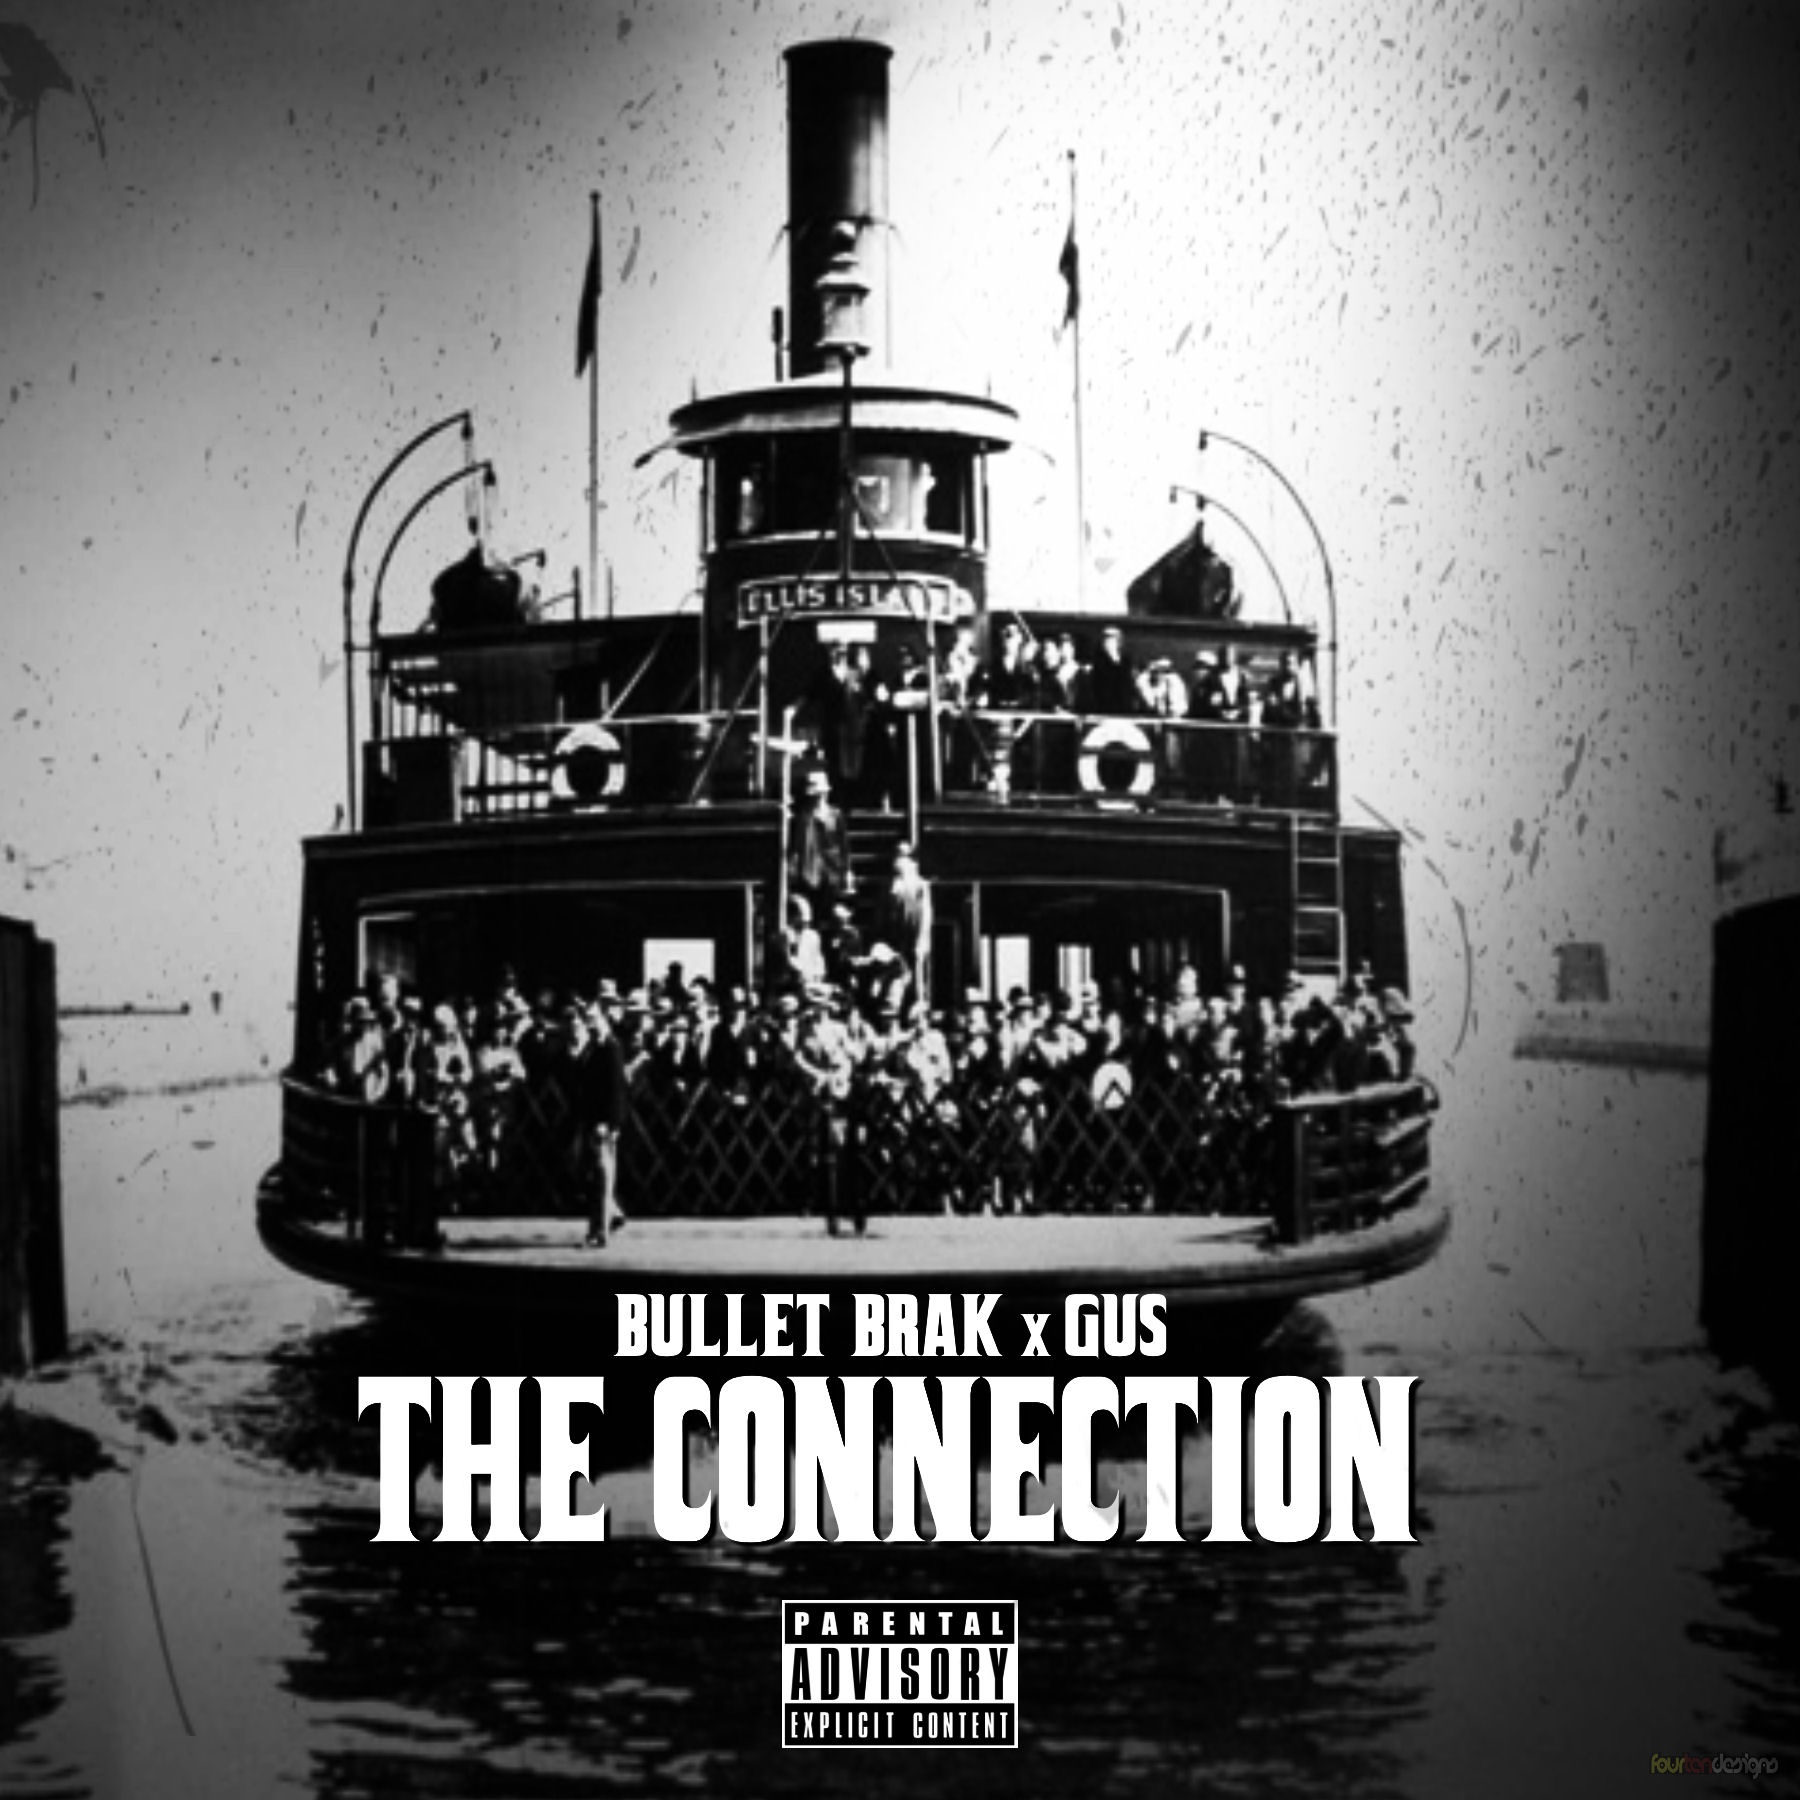 The Connection [Official Artwork] (1)